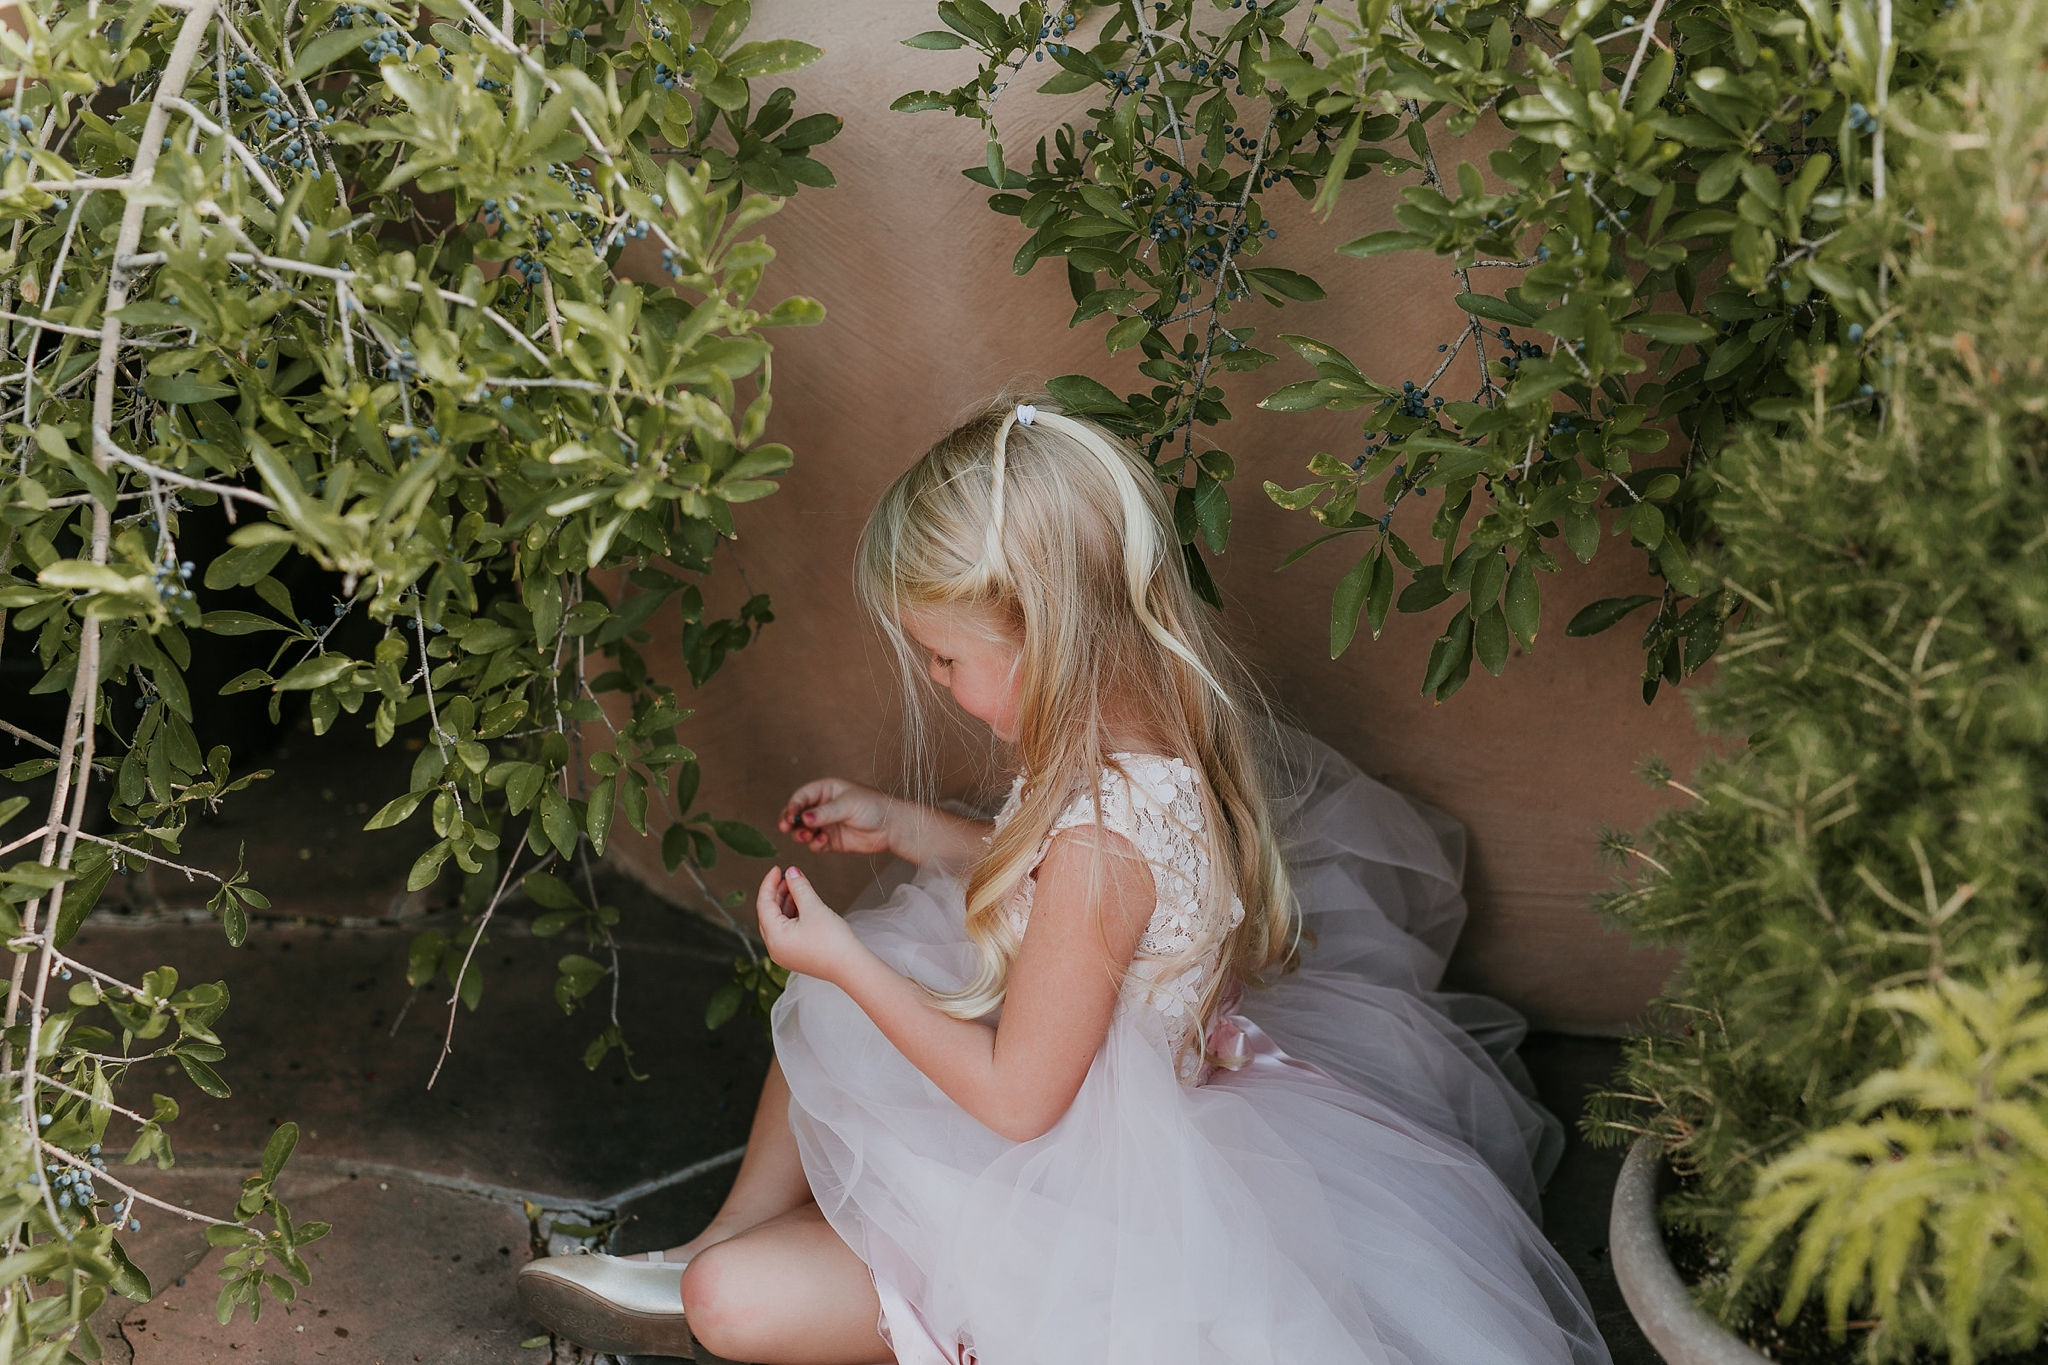 Alicia+lucia+photography+-+albuquerque+wedding+photographer+-+santa+fe+wedding+photography+-+new+mexico+wedding+photographer+-+new+mexico+wedding+-+flower+girl+-+wedding+flower+girl_0024.jpg